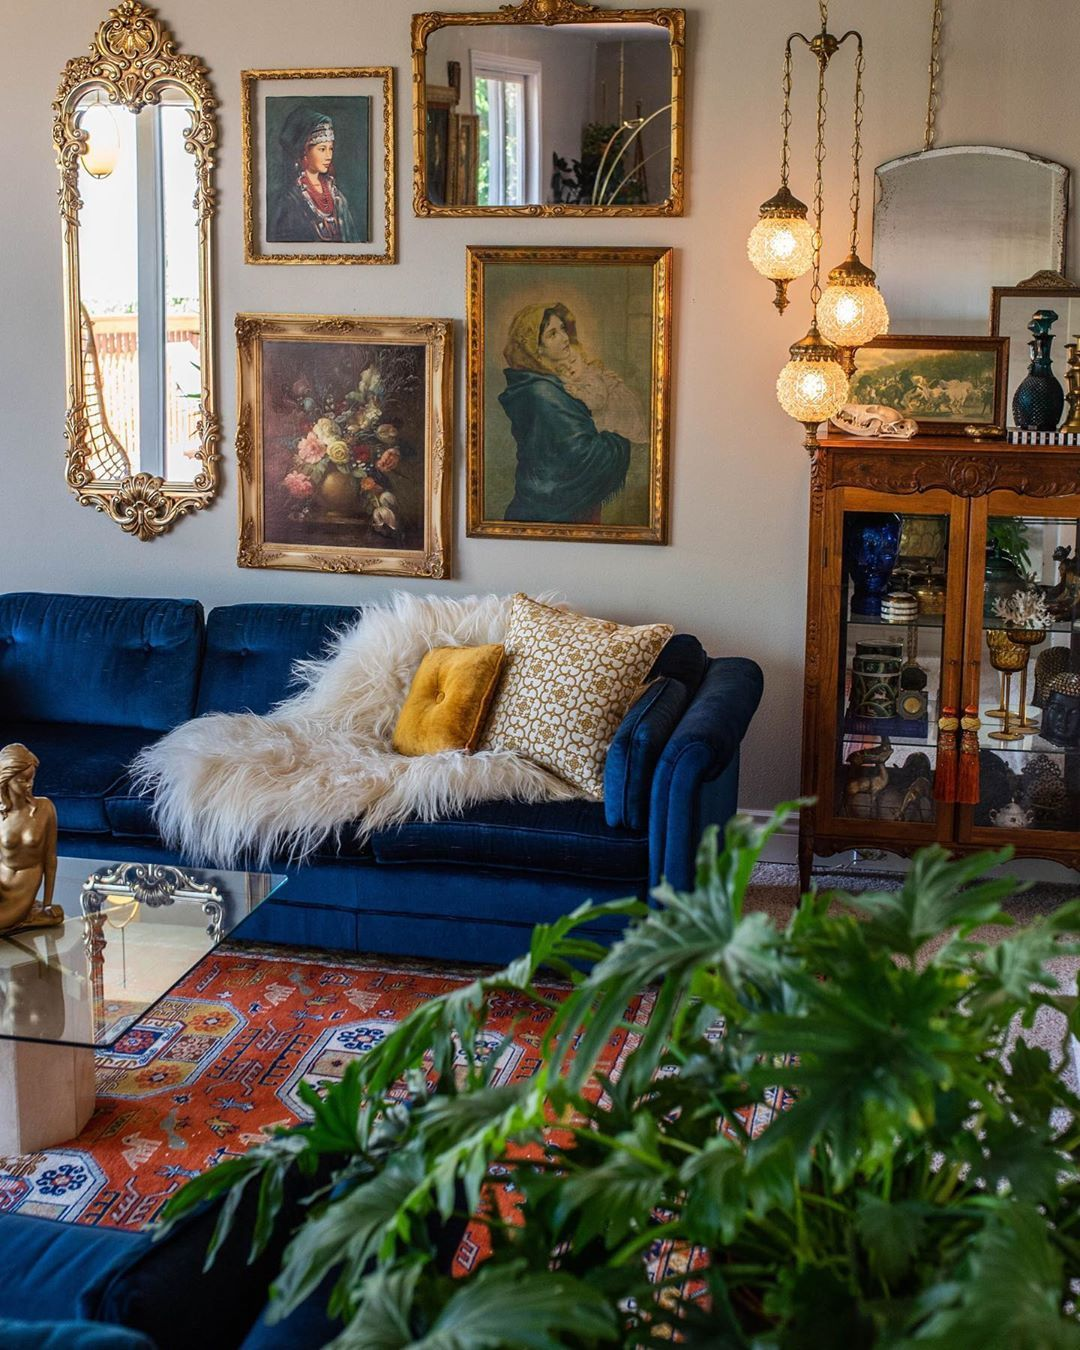 "Apartment Therapy on Instagram: ""Can you tell this home belongs to a vintage reseller? @msviciousdesign has filled her space with plenty of vintage treasures. She says,"